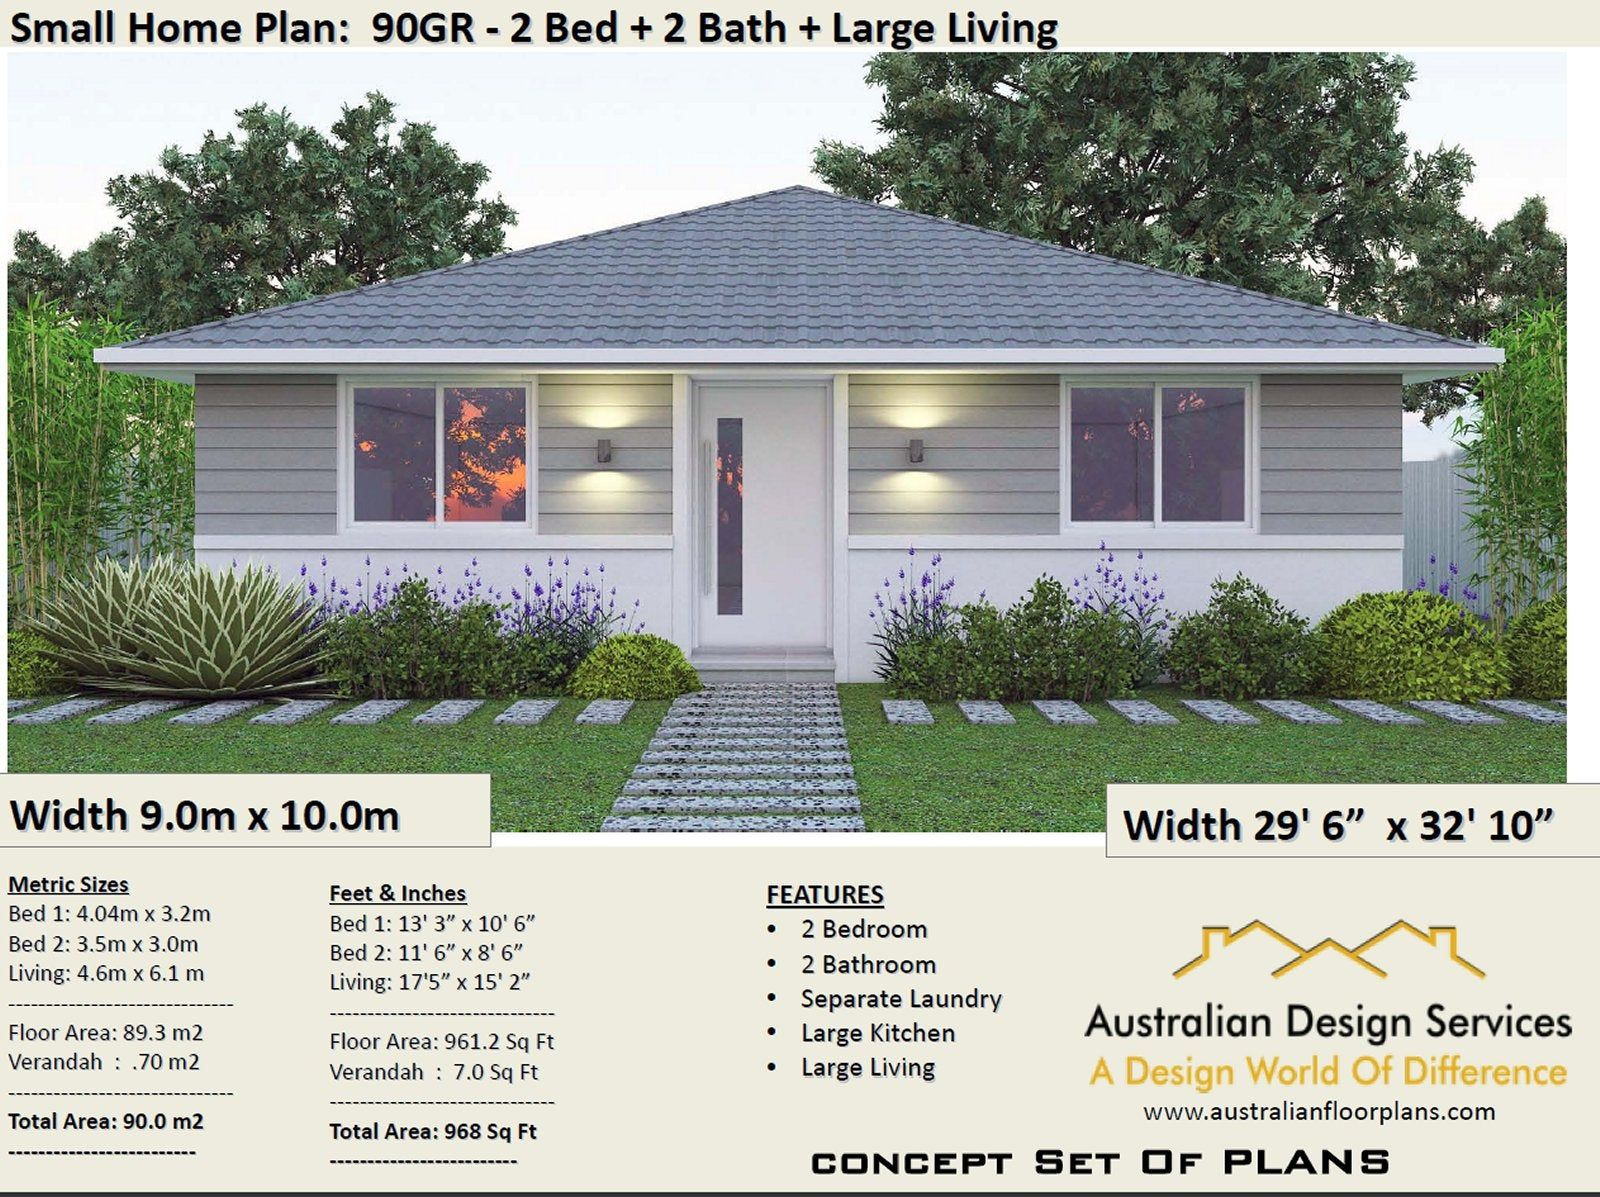 2 Bedroom House Plan 968 Sq Feet Or 90 M2 2 Small Home Design Small Home Design 2 Bedroom Granny Flat Concept House Plans For Sale House Plans For Sale Small House Design House Plans